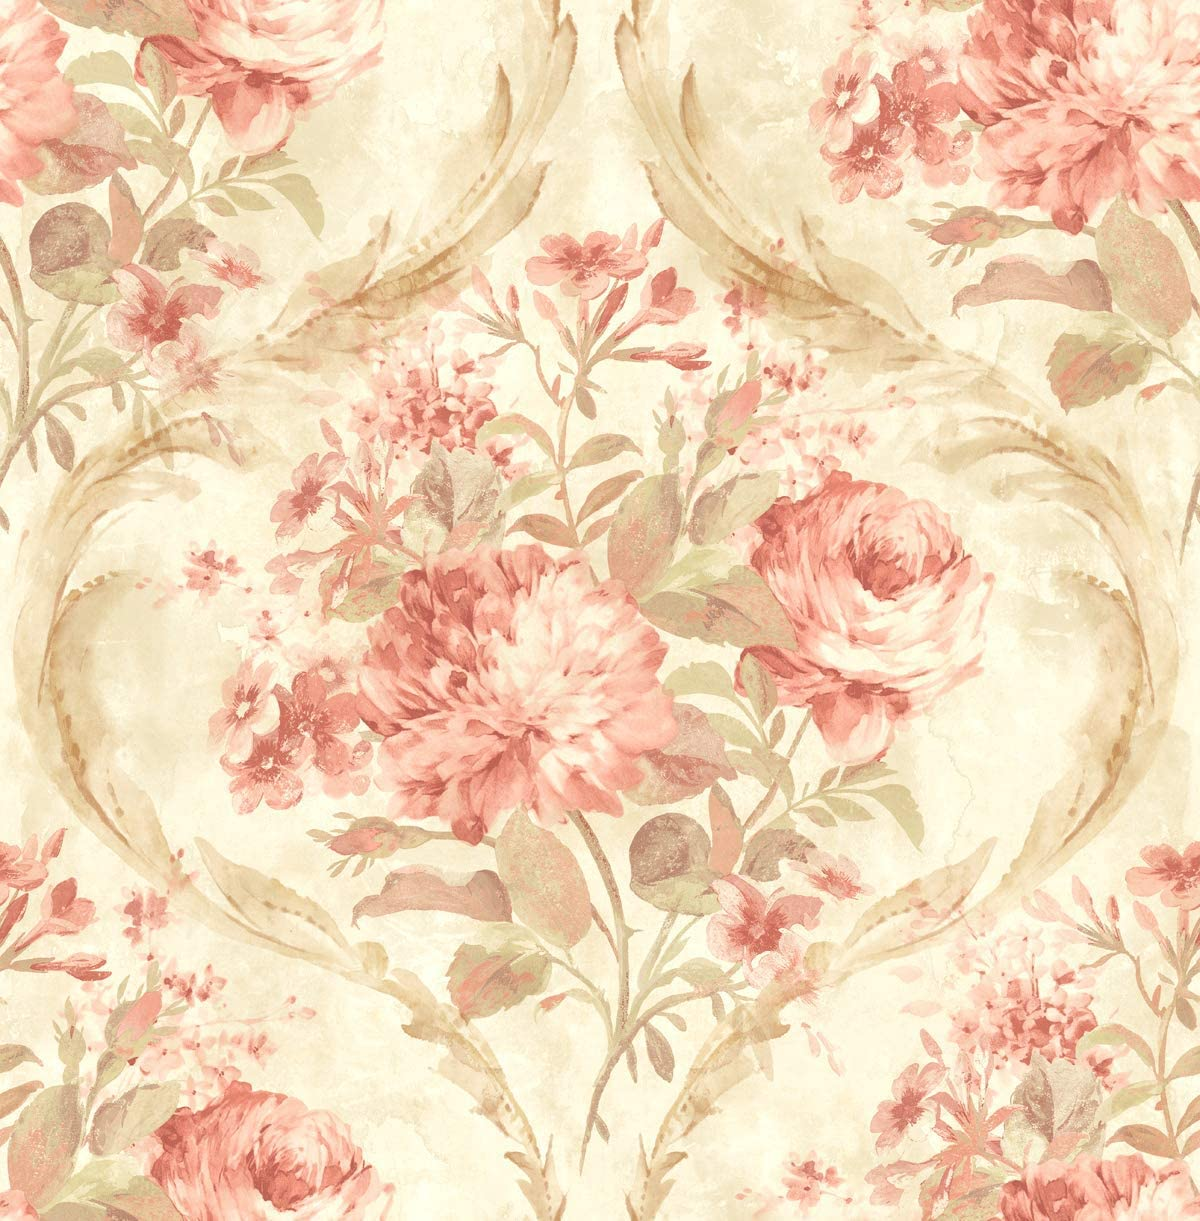 Pink Floral Wallpaper Chinoiserie Wallpaper Rose Wallpaper Vintage